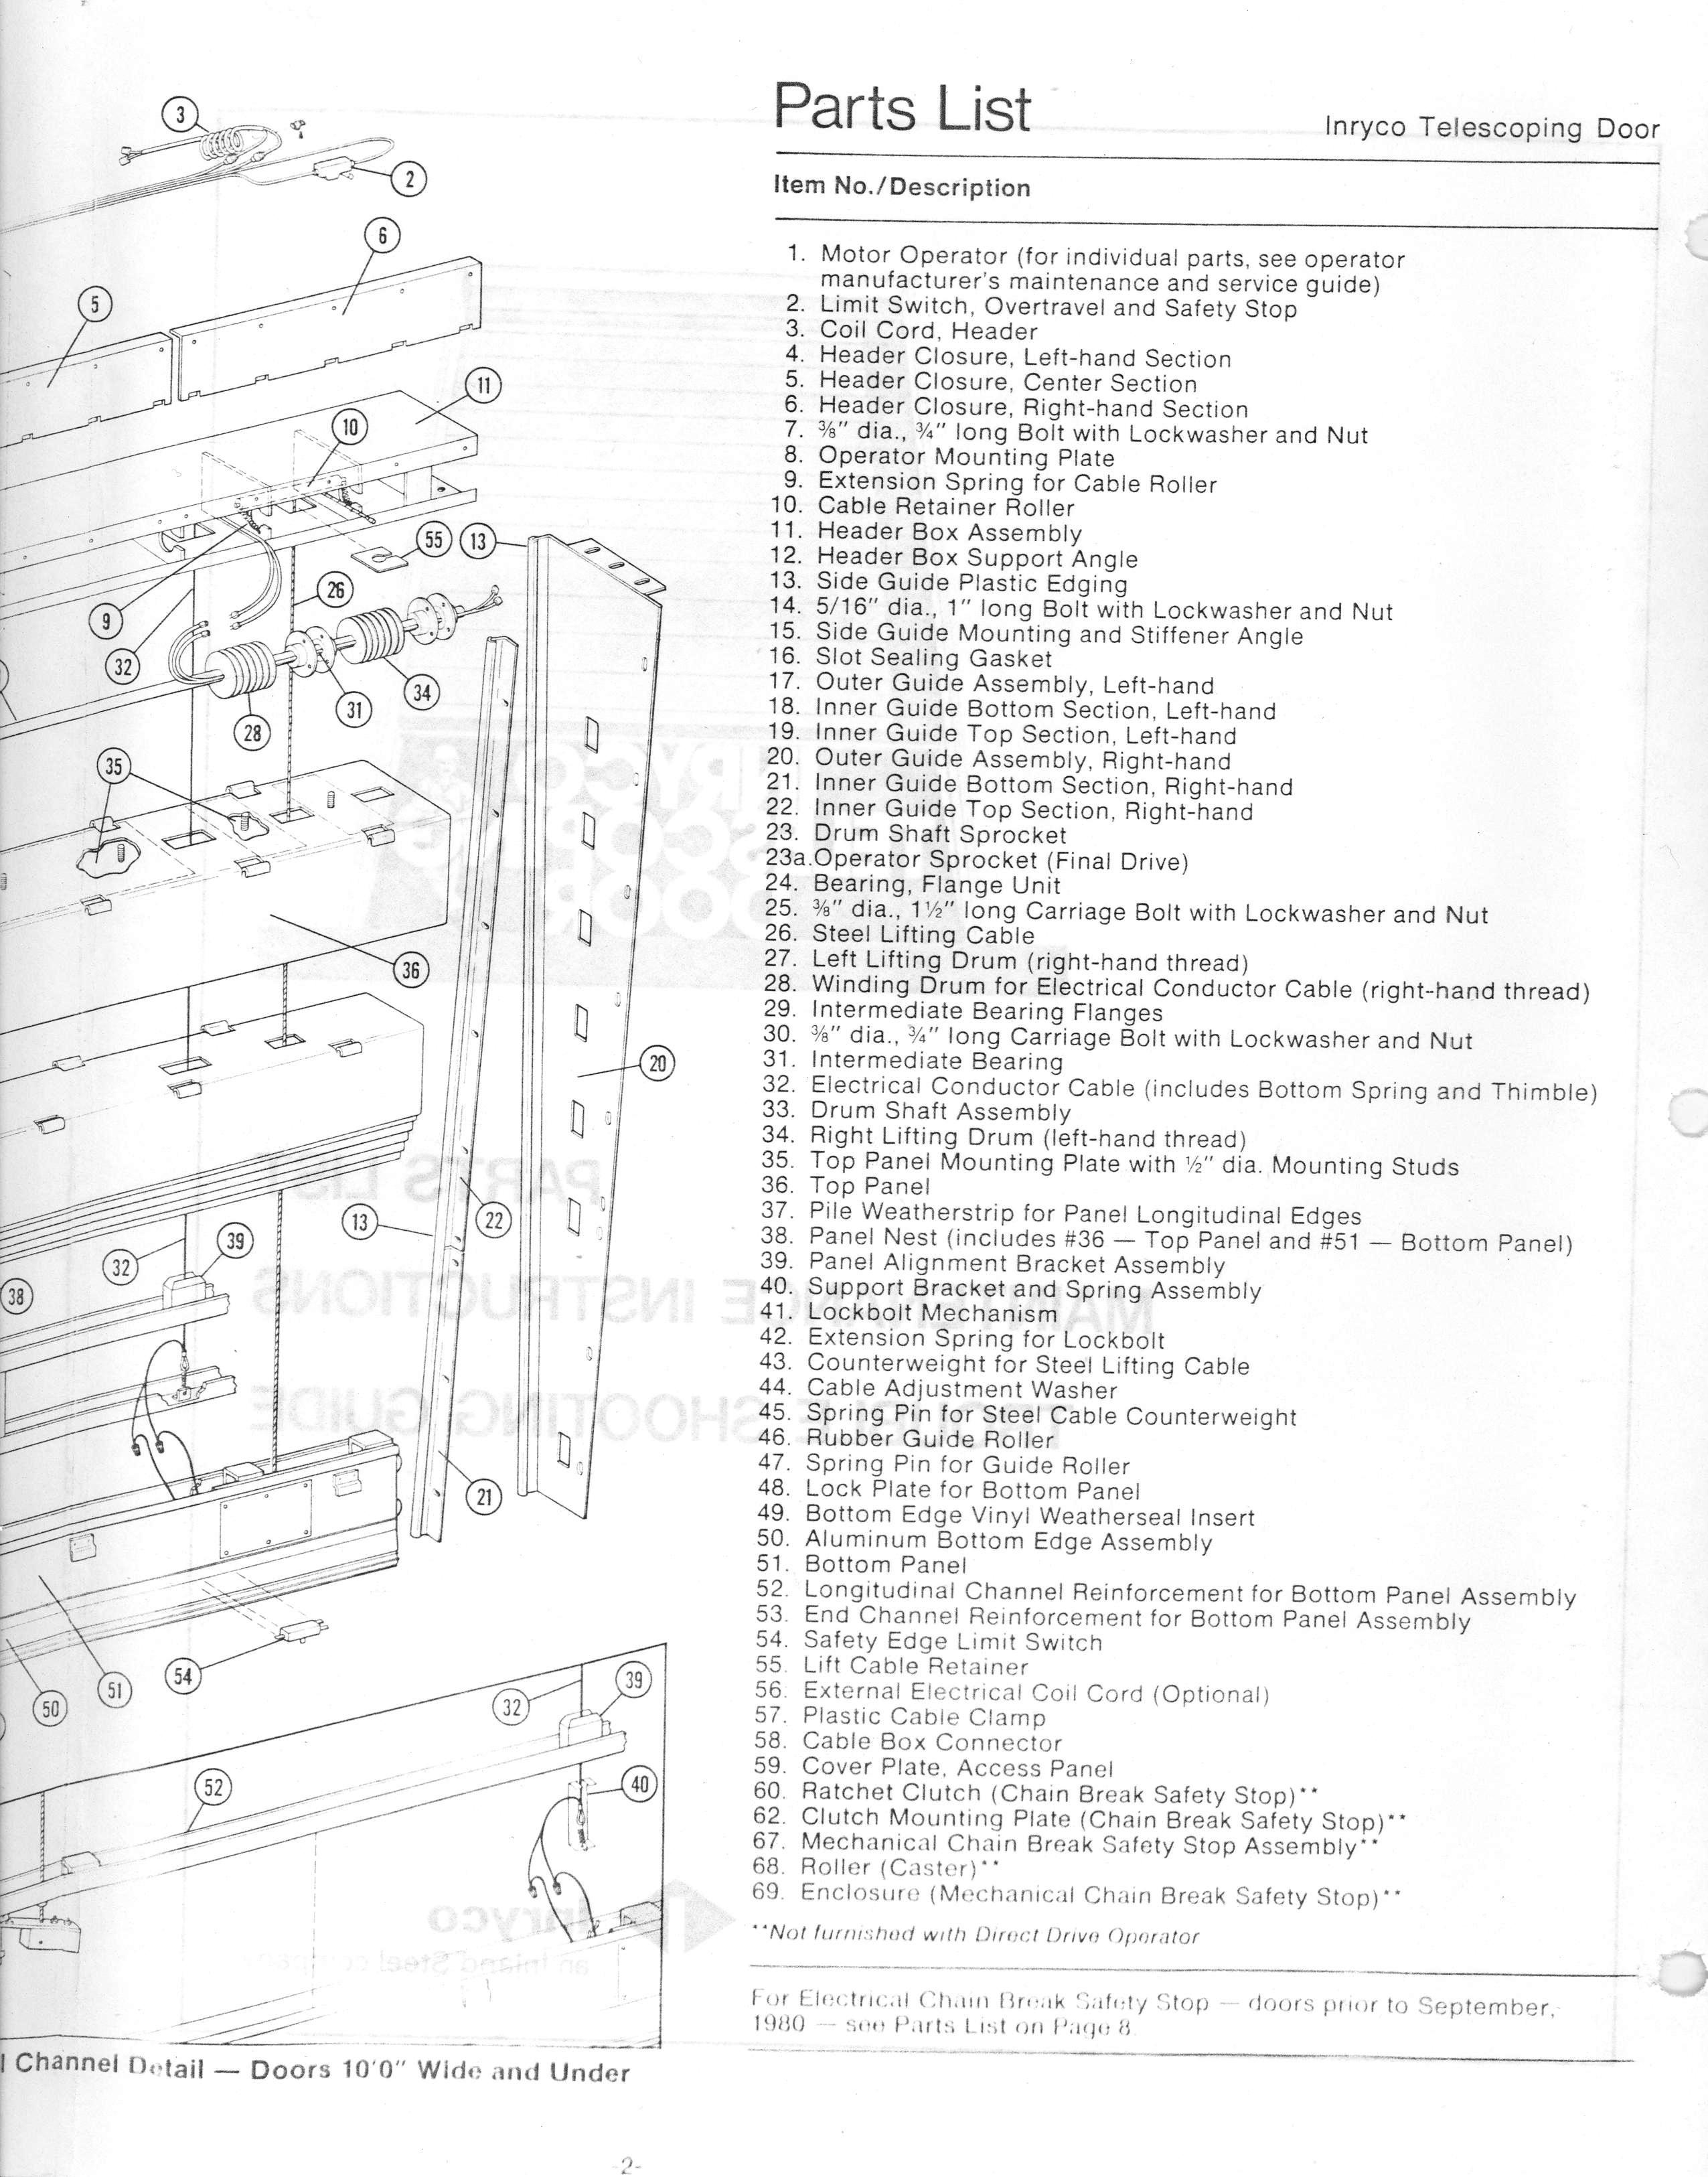 Inryco Telescoping Door Wiring Diagram For Circuit Symbols Ops Diagrams Index Of Telescope Operations Manual Manuals Volume 1 Rh Loen Ucolick Org Access Control Card Reader Schematic